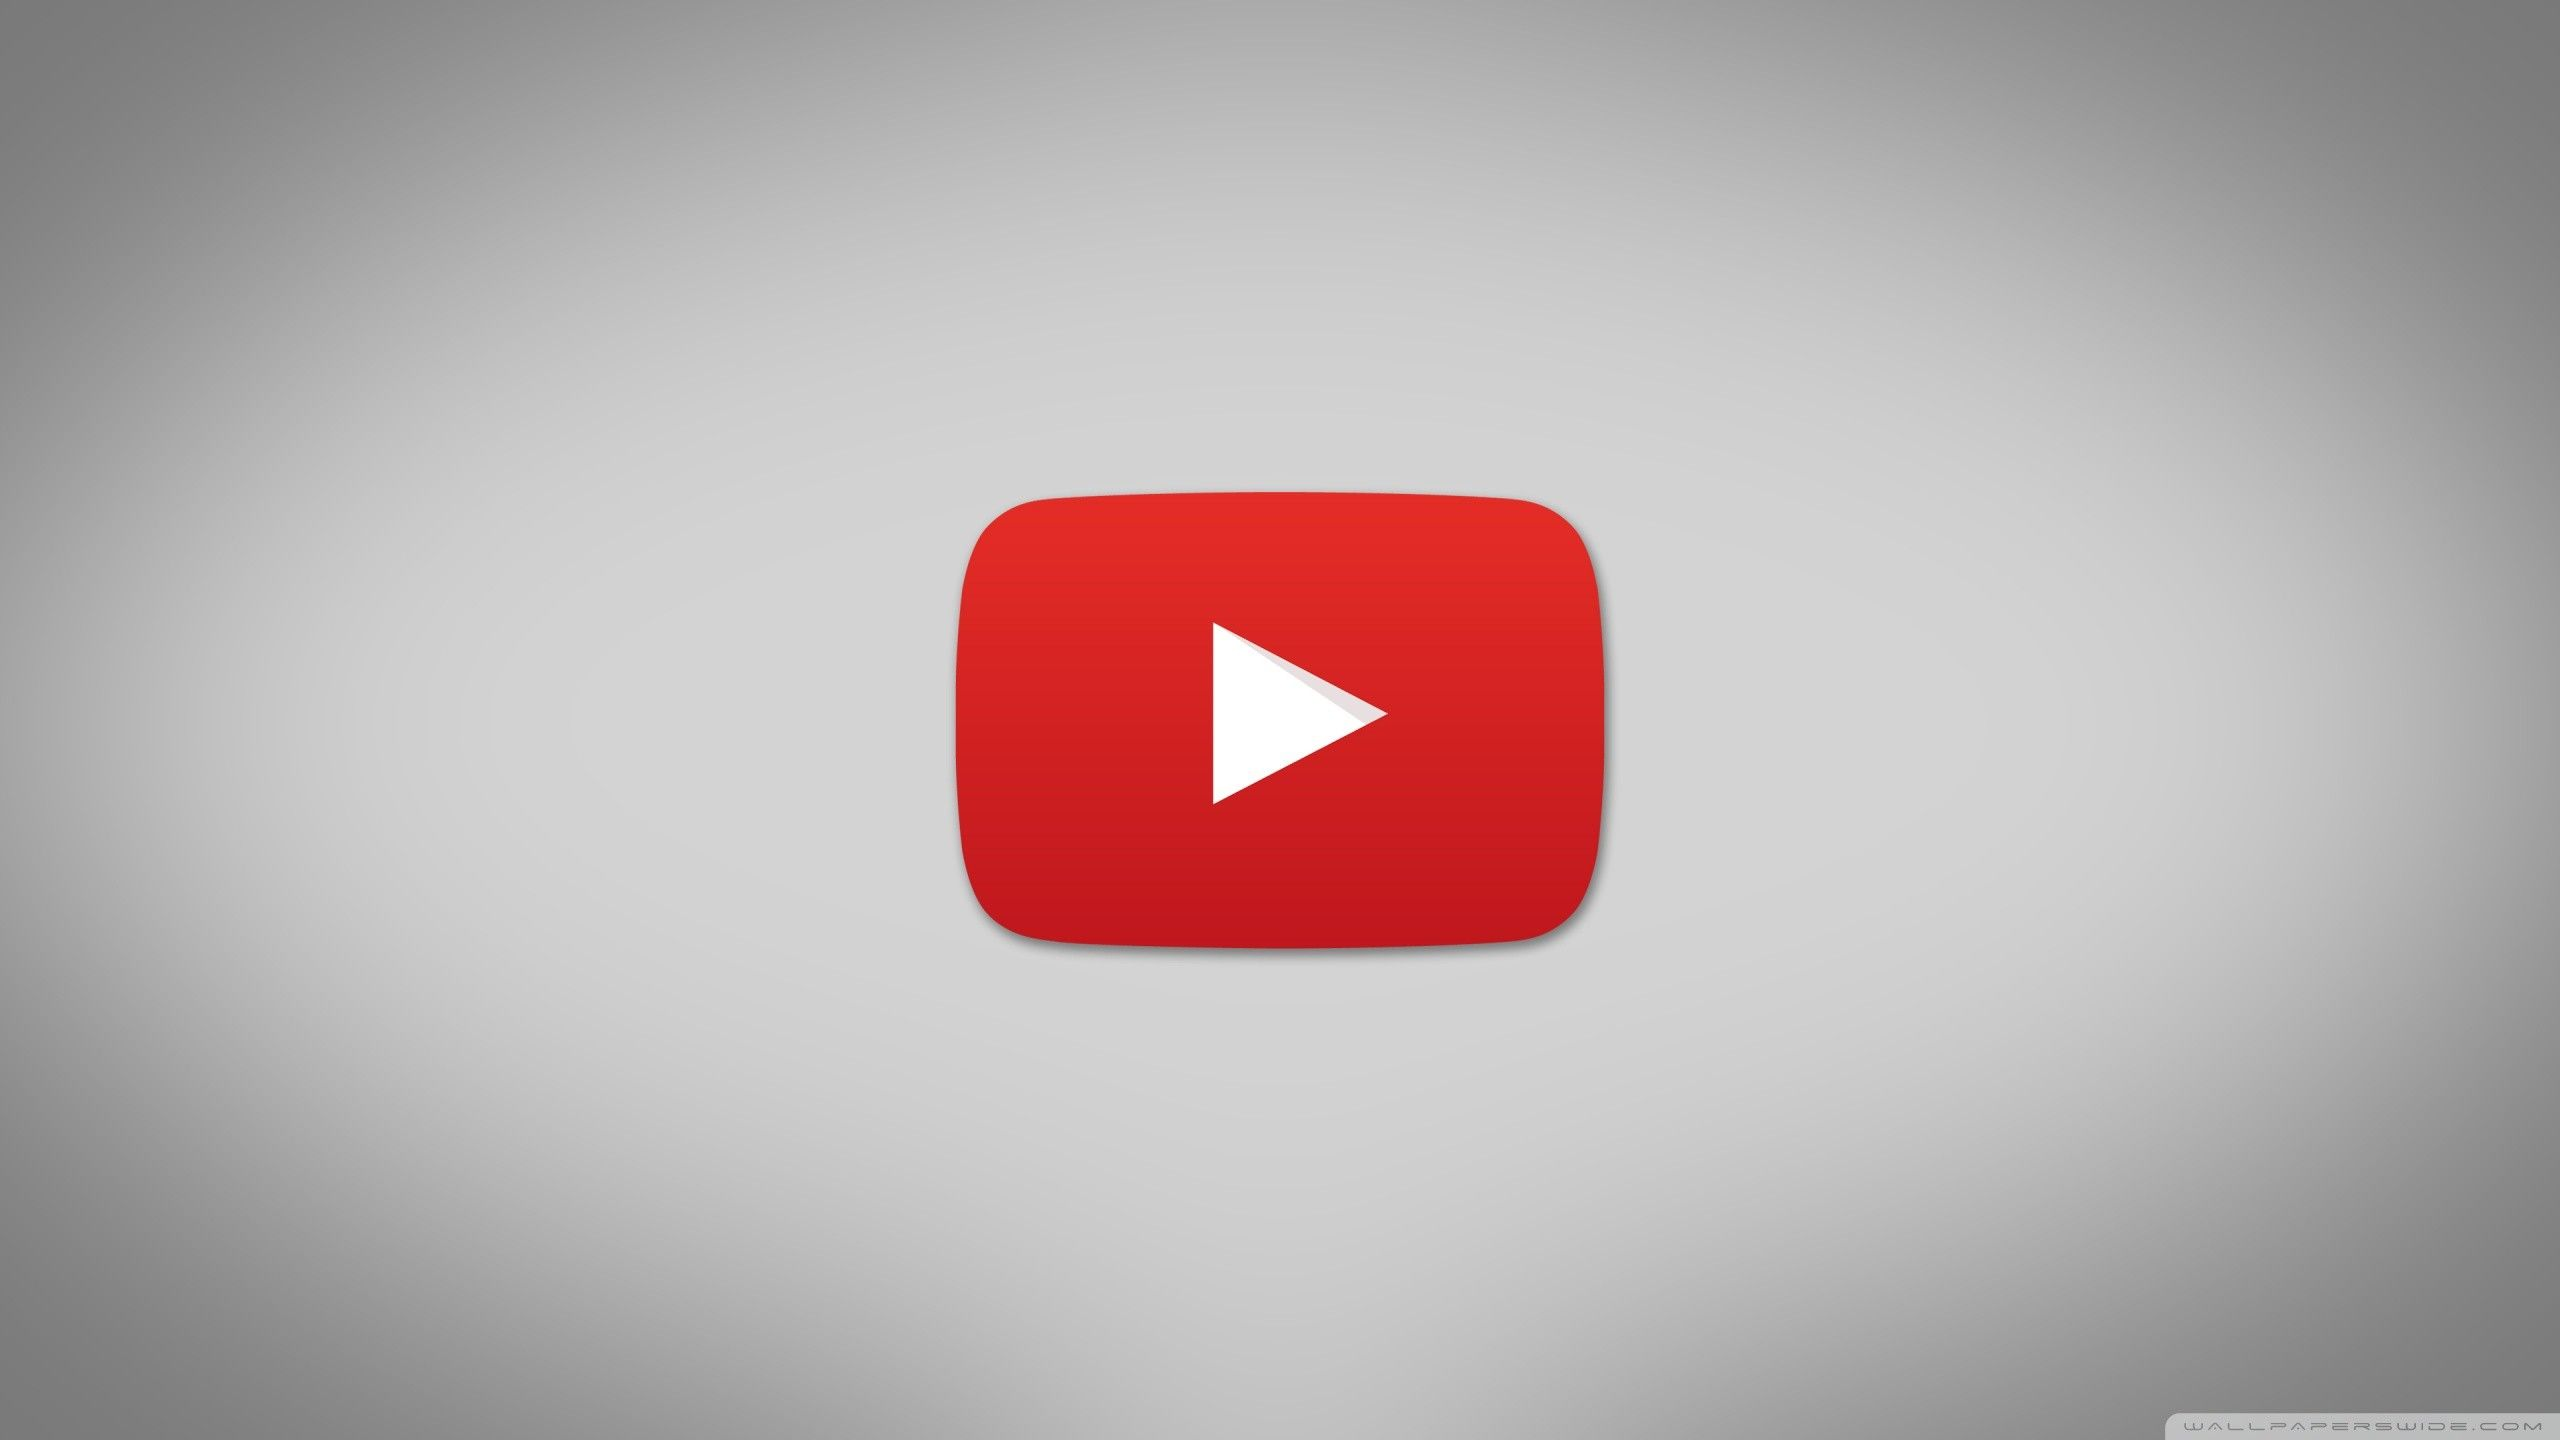 2560x1440 Wallpaper For Youtube 83 Images Youtube Logo Online Jobs For Students Hd Cool Wallpapers